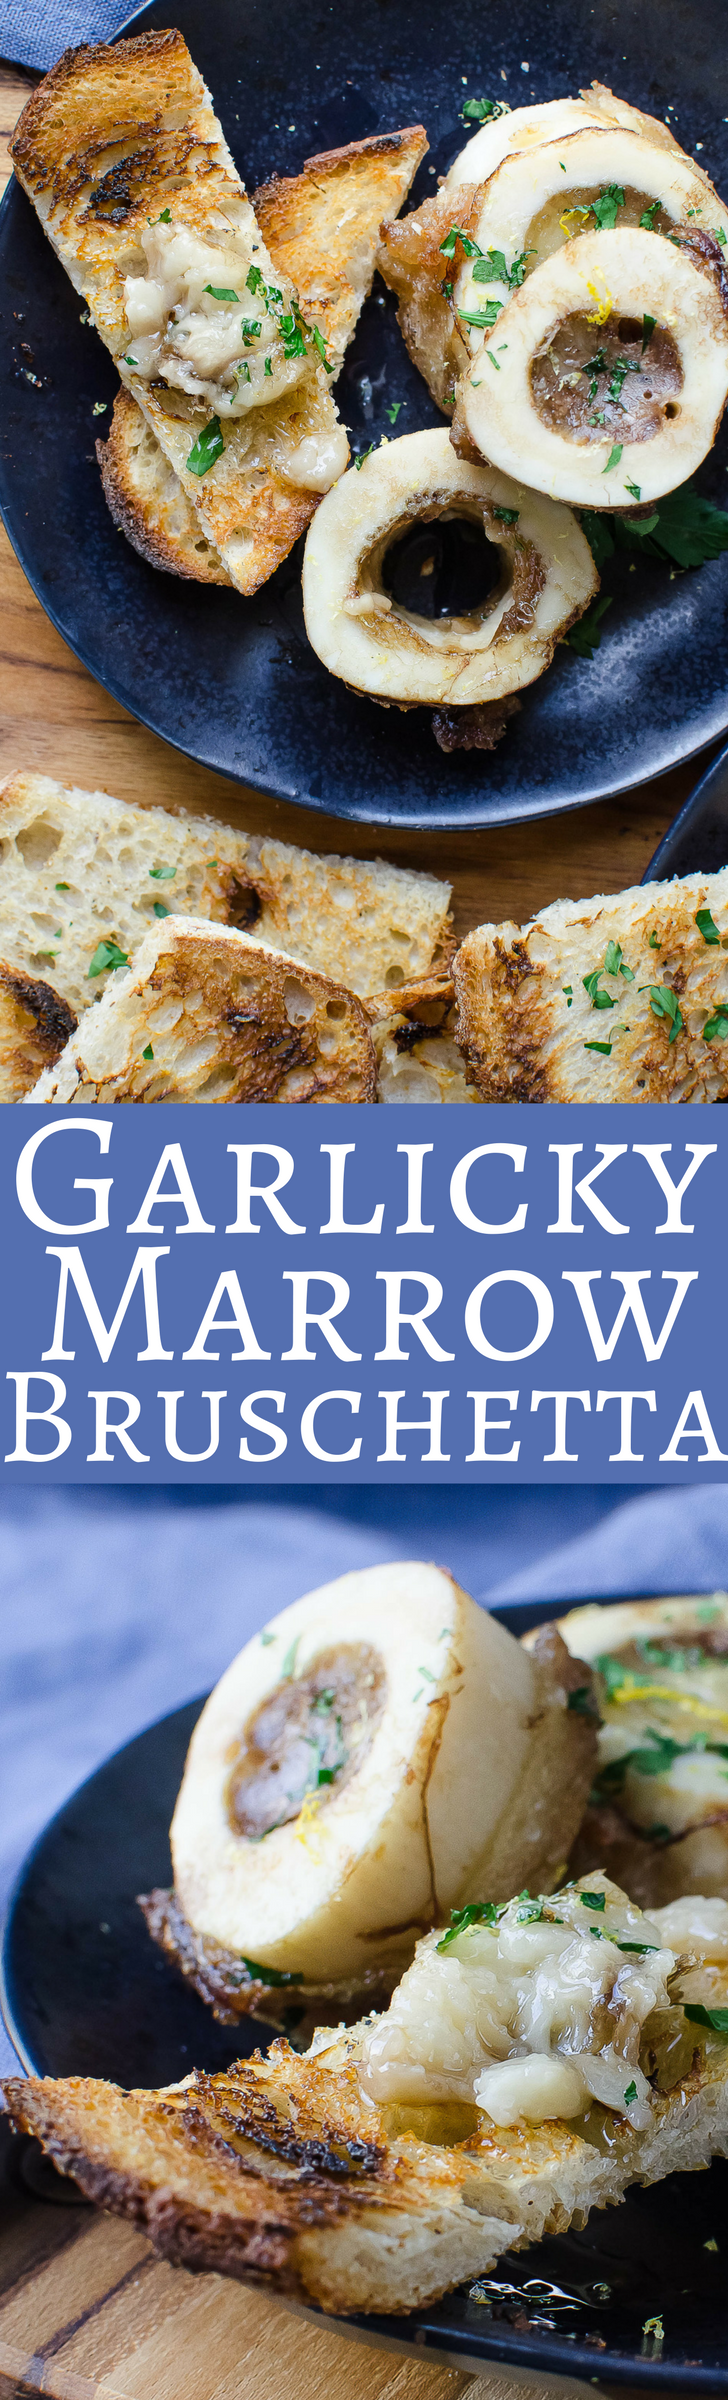 Grilled garlic-rubbed toasts with roasted bone marrow and gremolata!  The best way to start a meal!